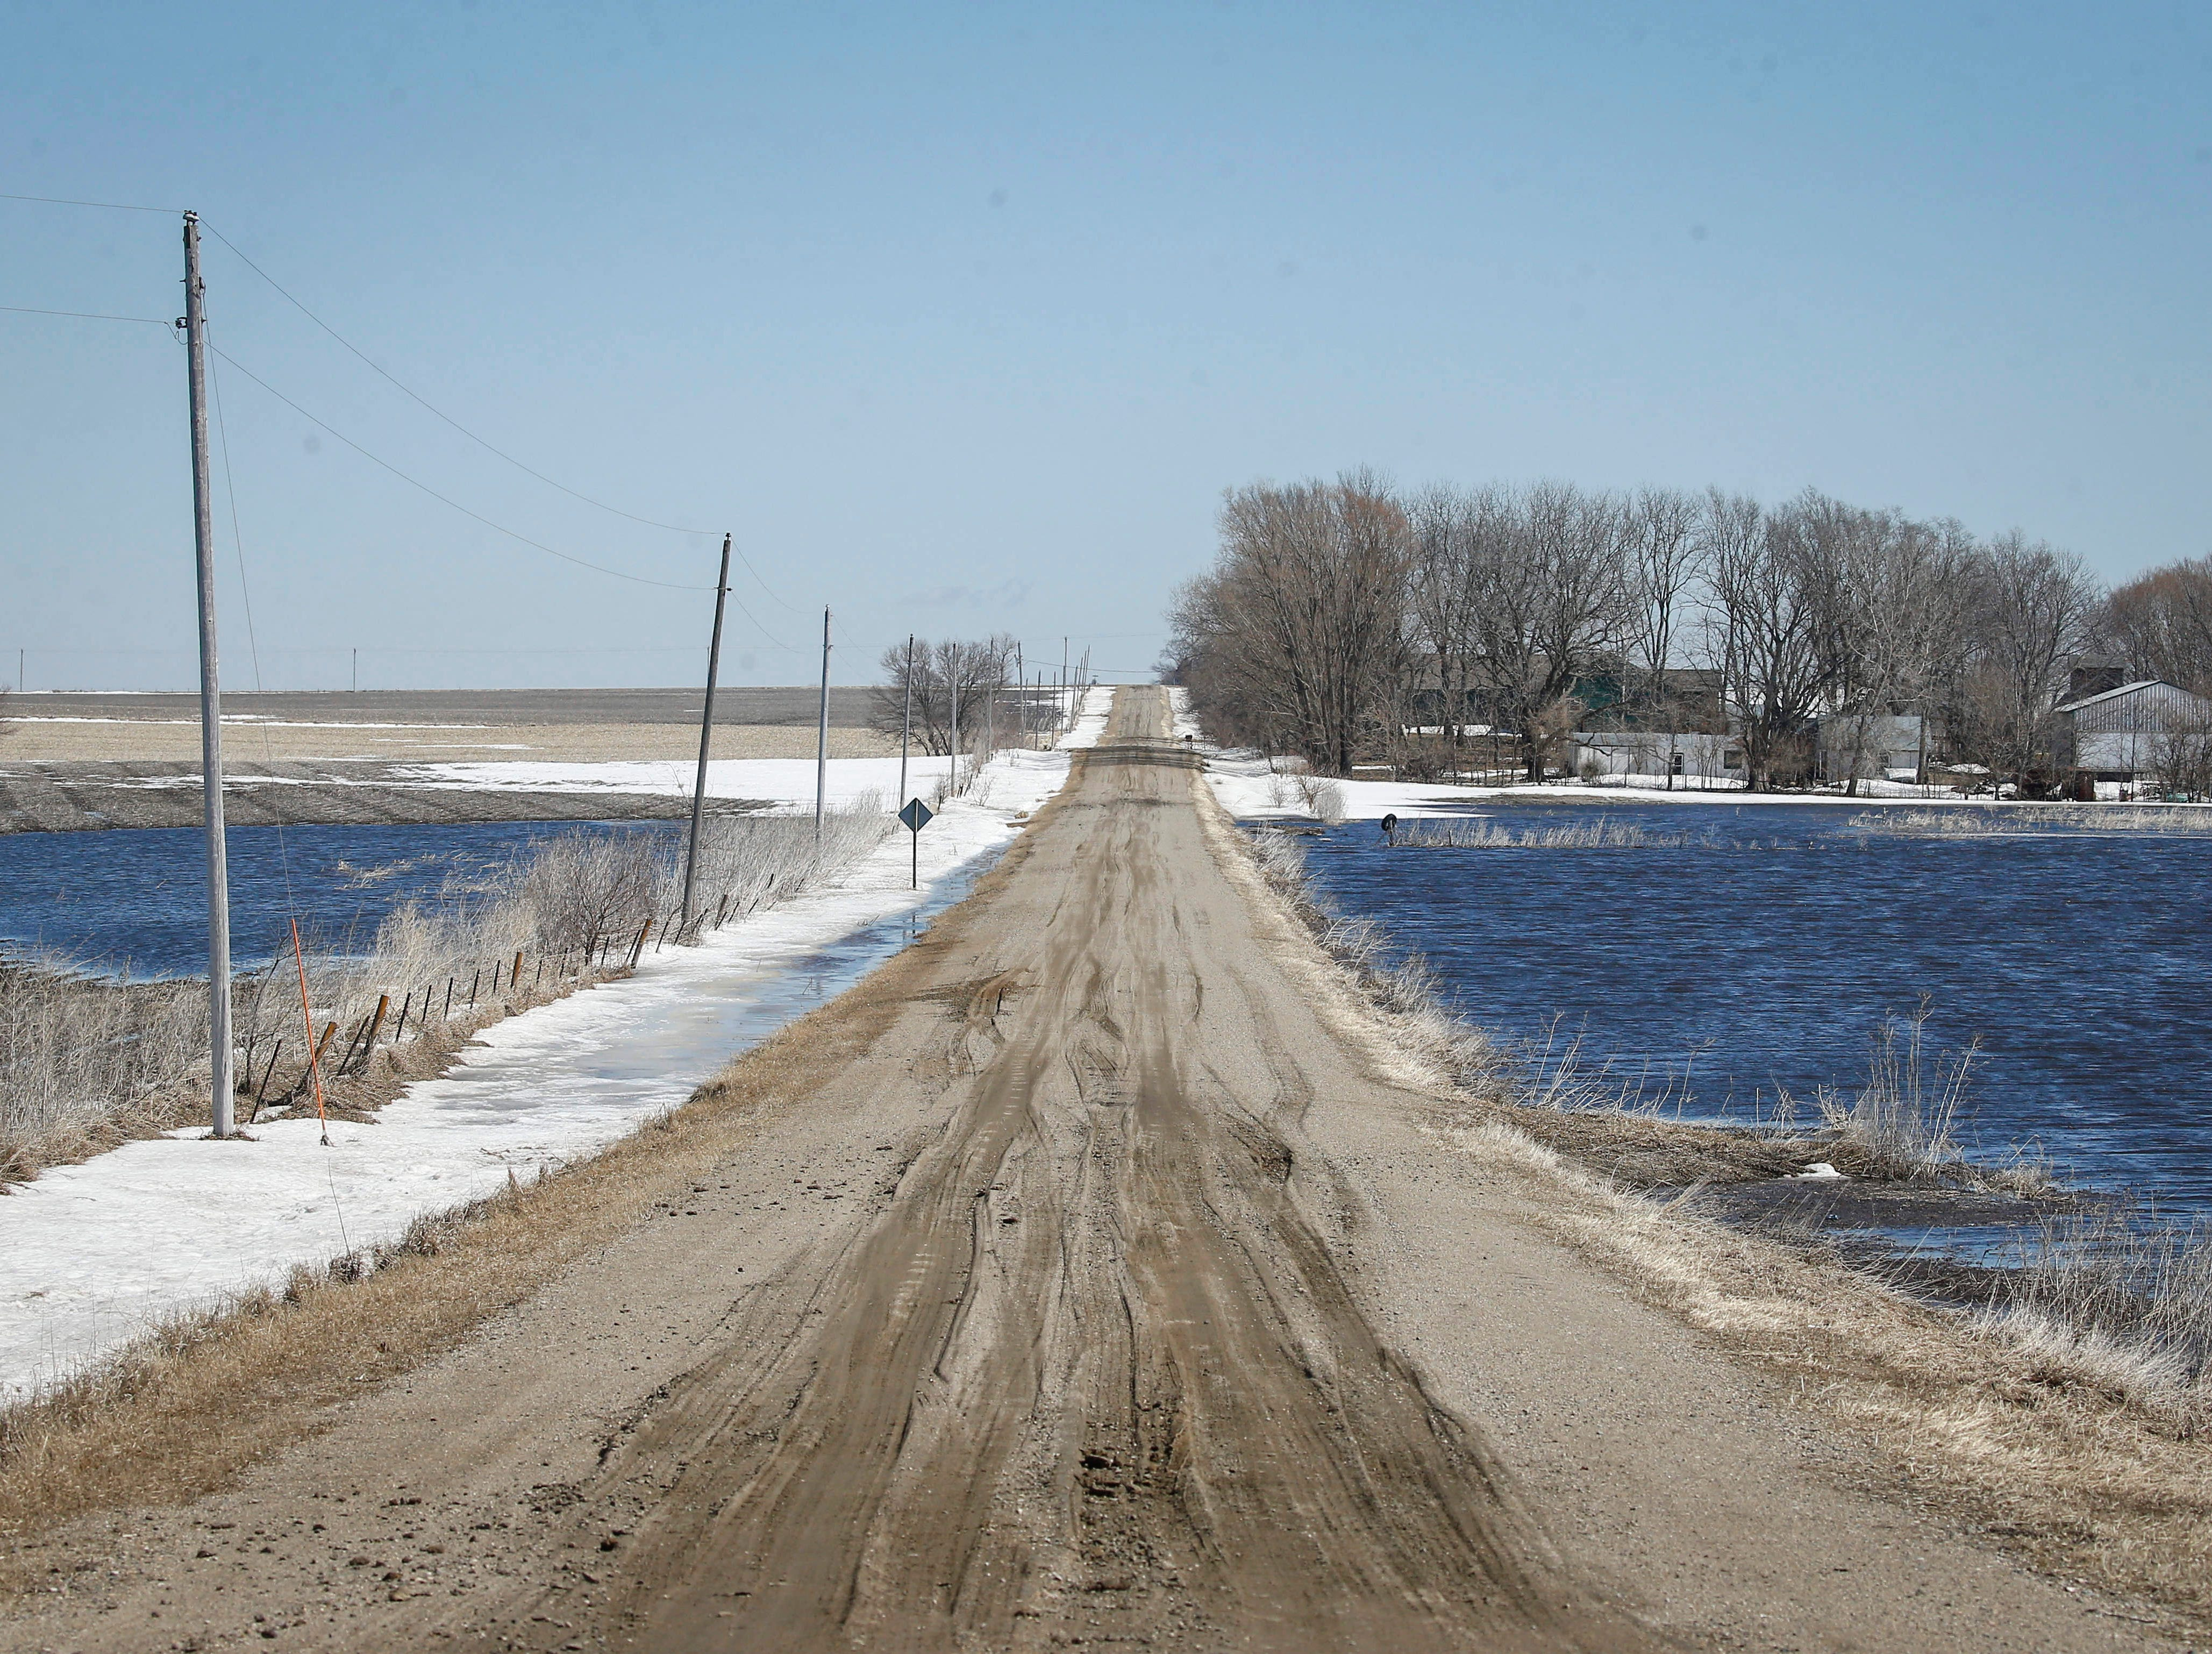 Water from melting snow inches close to 400th Street near Stratford in Hamilton County, on Friday, March 15, 2019.